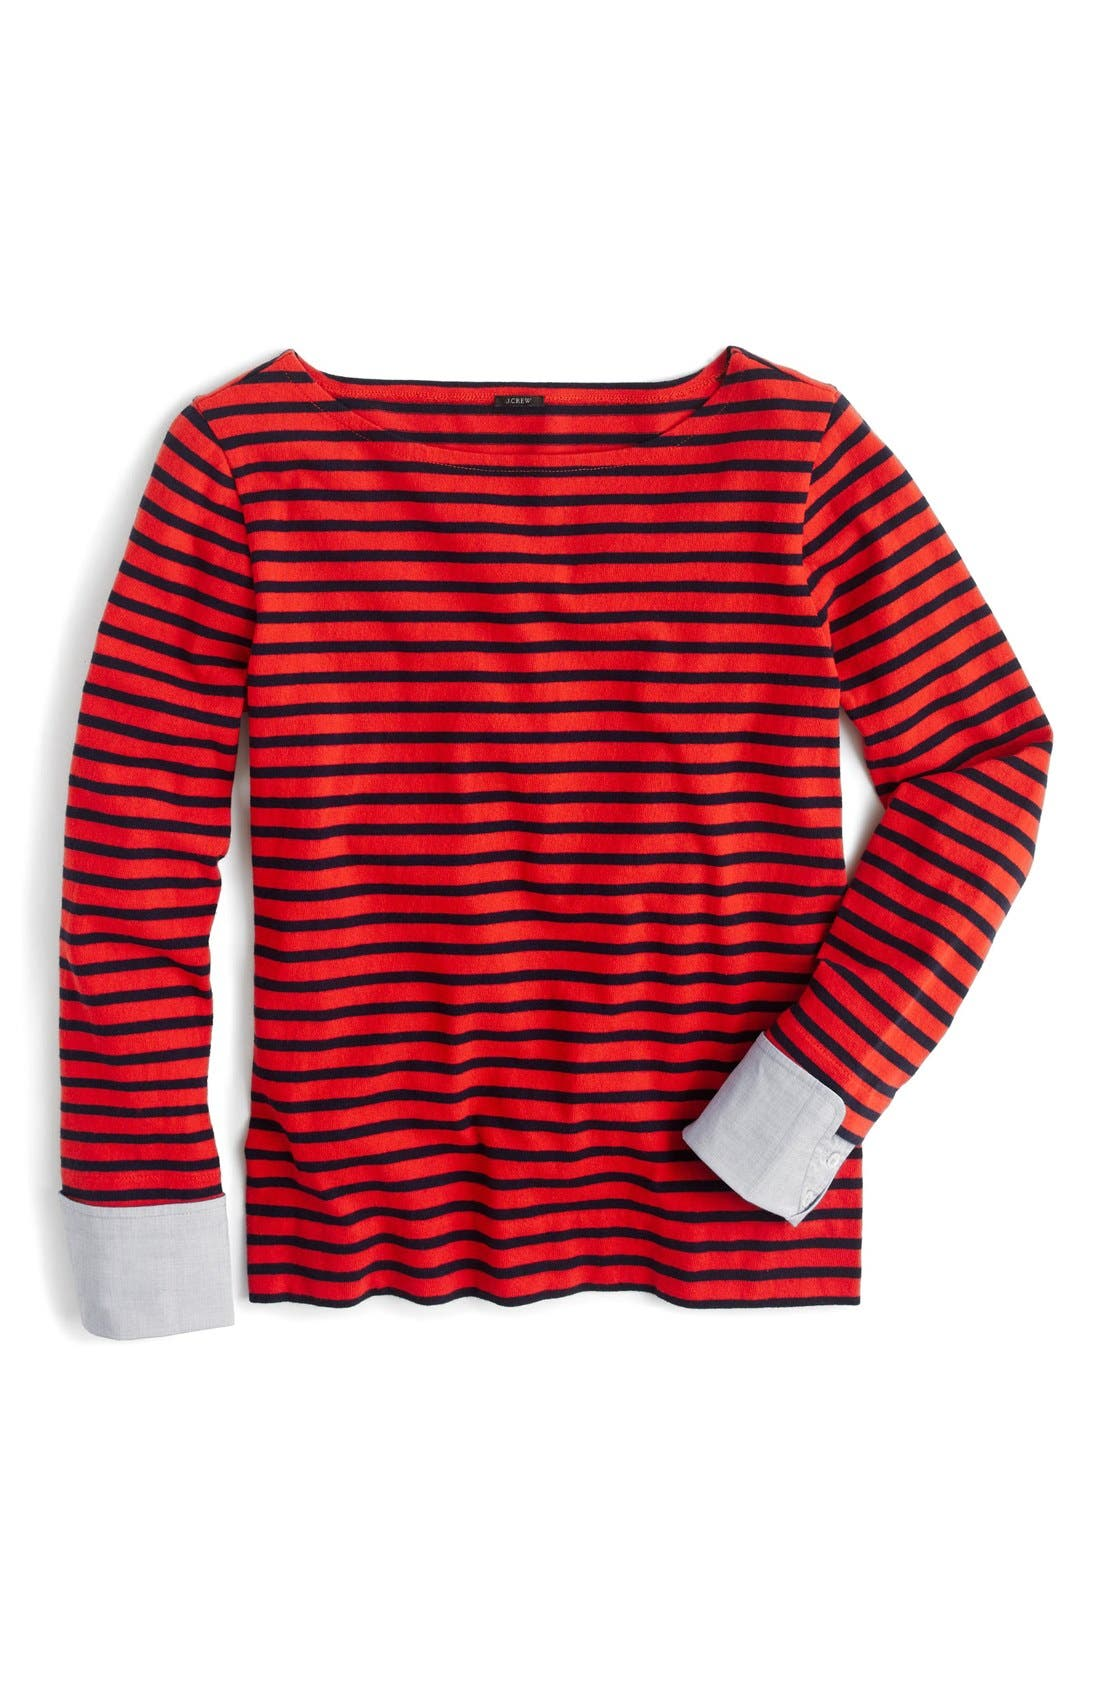 Main Image - J.Crew Built-In Cuff Stripe Tee